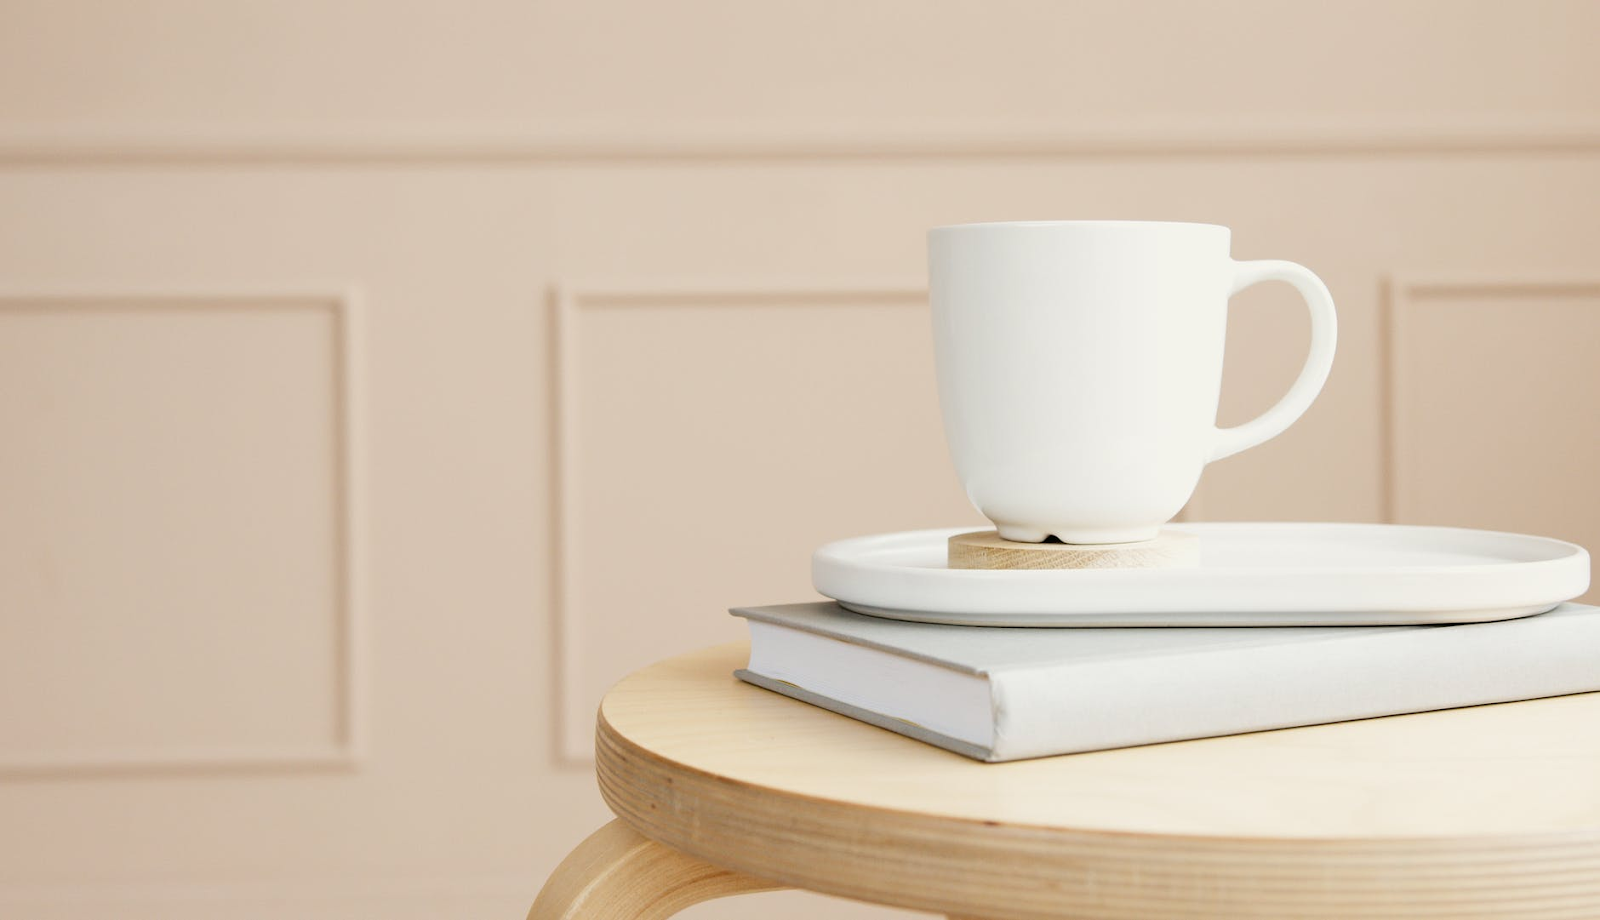 white cup on top of book on wooden table